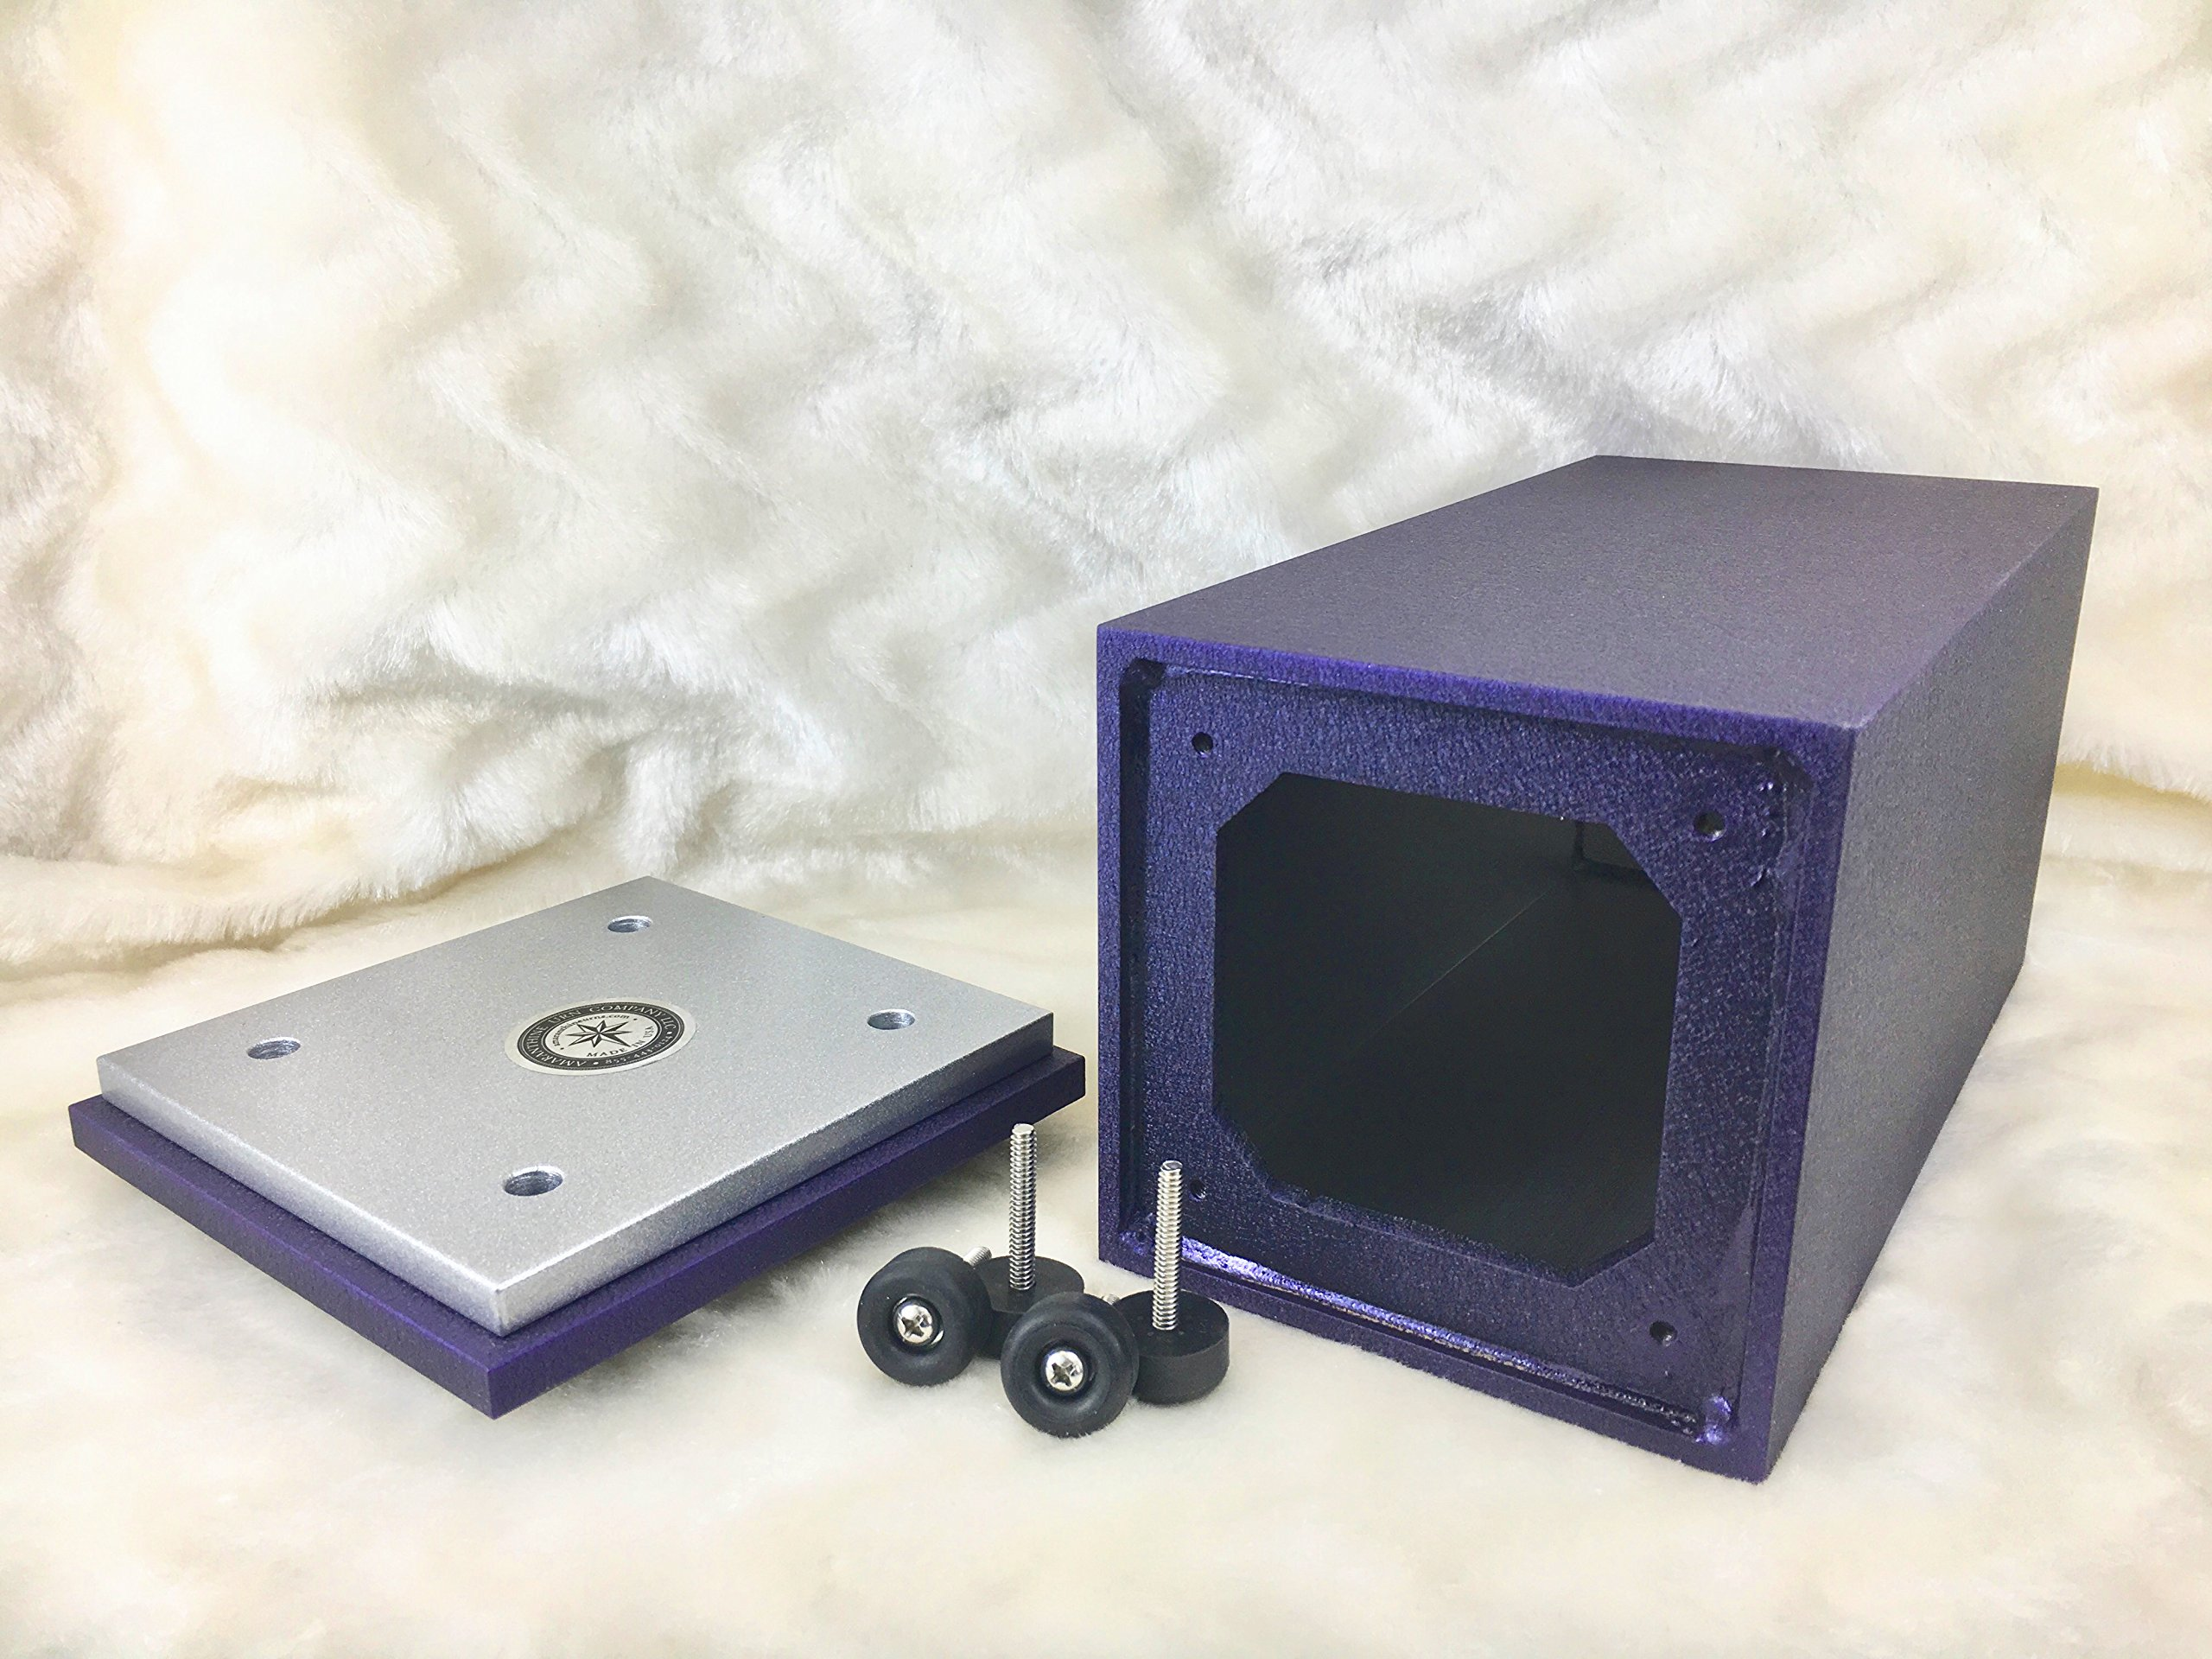 PERSONALIZED Engraved Butterfly Cremation Urn for Human Ashes-Made in America-Handcrafted in the USA by Amaranthine Urns (Adult Funeral Urn up to 200 lbs living weight) Eaton SE- (Purple Velvet) by Amaranthine Urn Company (Image #5)